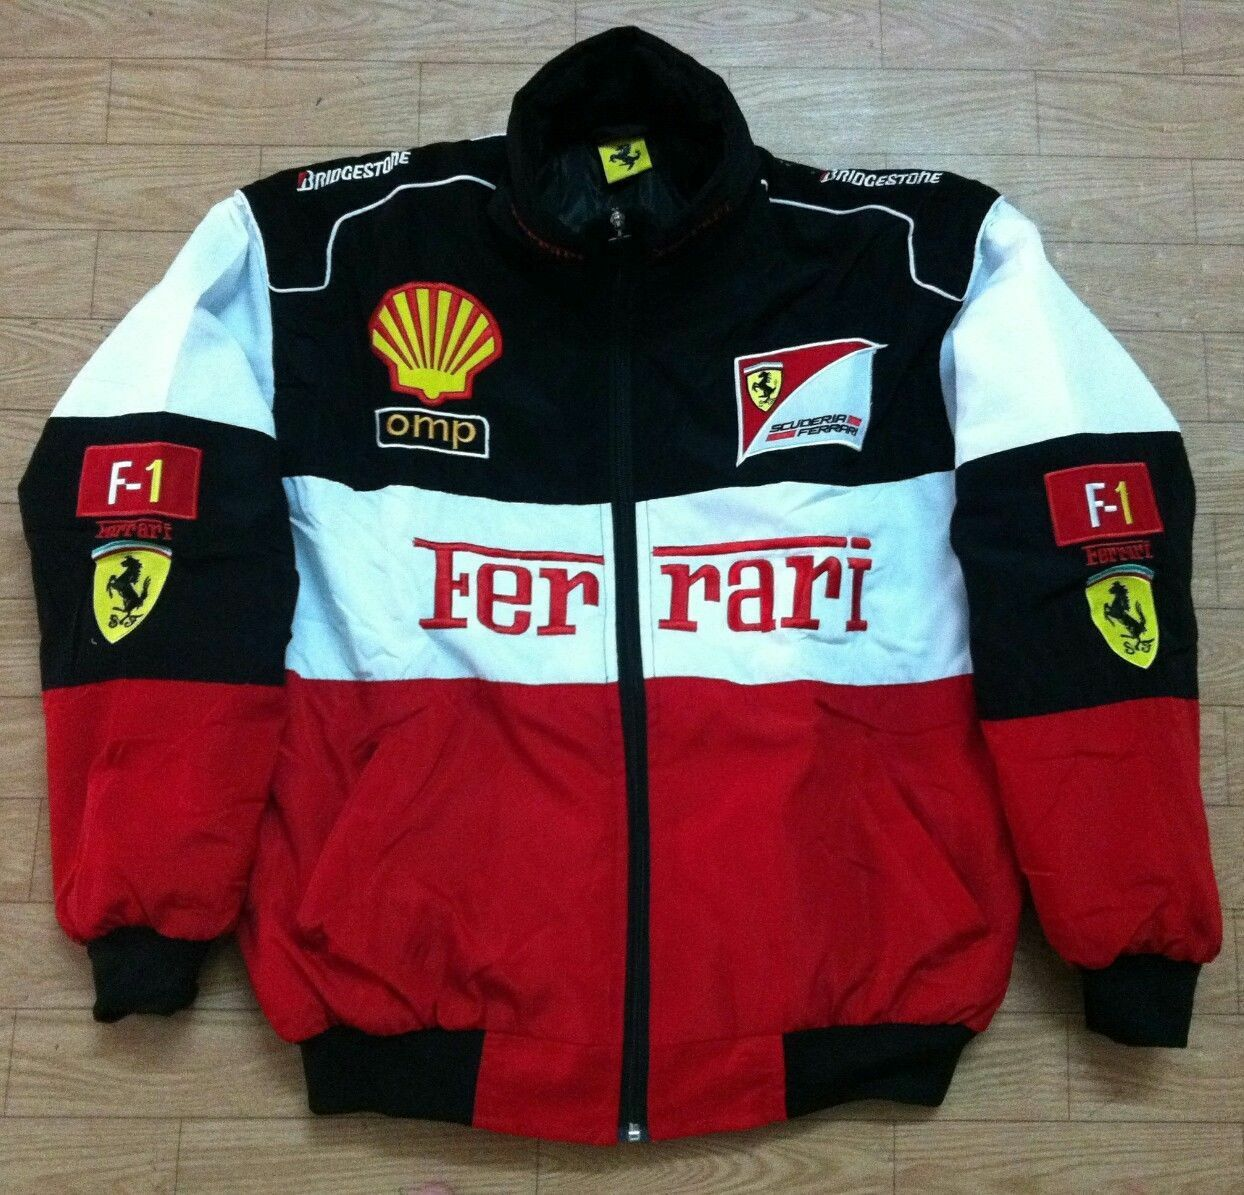 2020 Red Black Embroidery Exclusive Jacket Suit F1 Team Racing Ebay